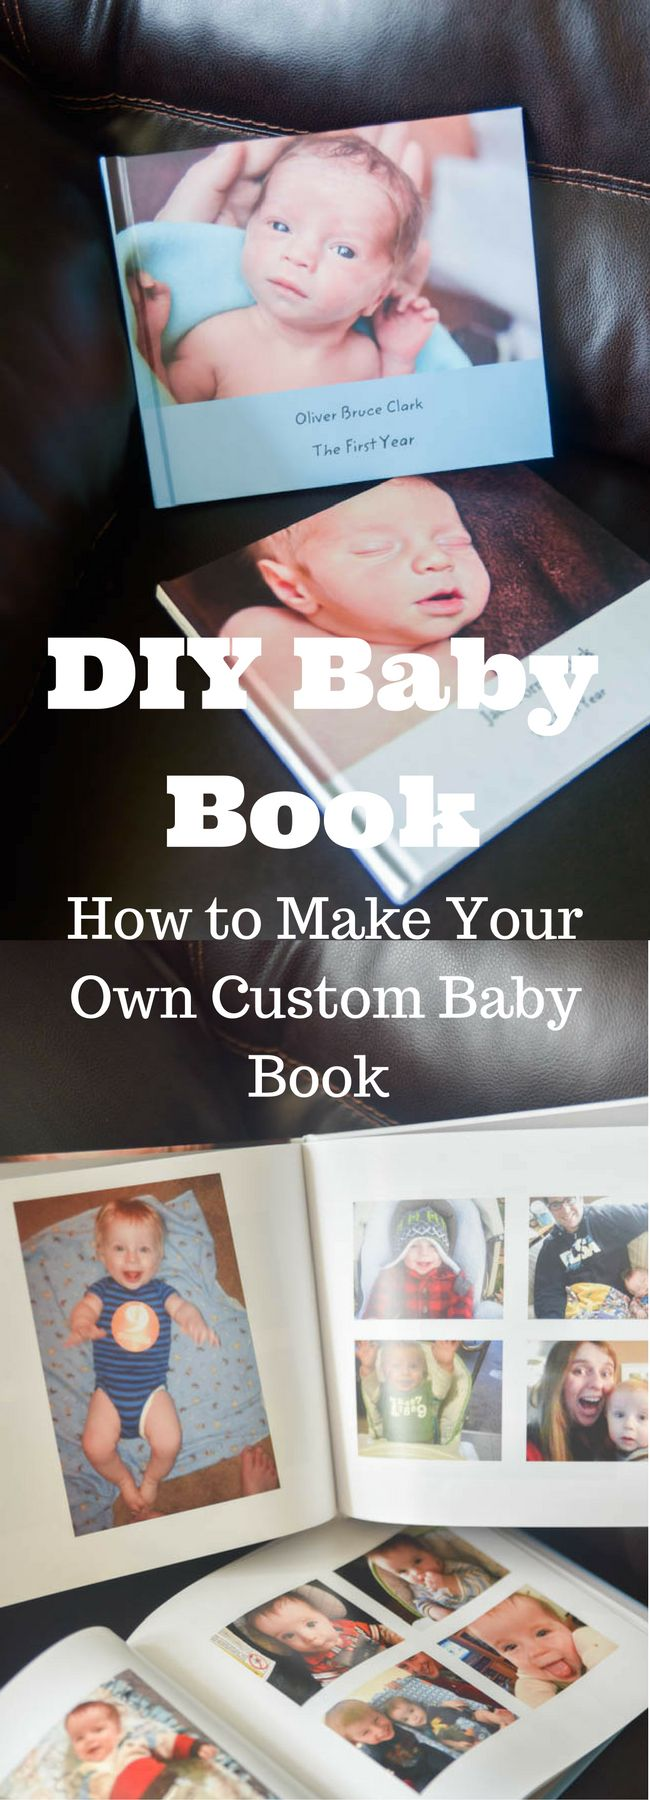 DIY Baby Book / Baby Book Ideas / DIY Baby Book Ideas / Baby's First Year / Make Your own Baby Book / Baby Book Page Ideas #ad